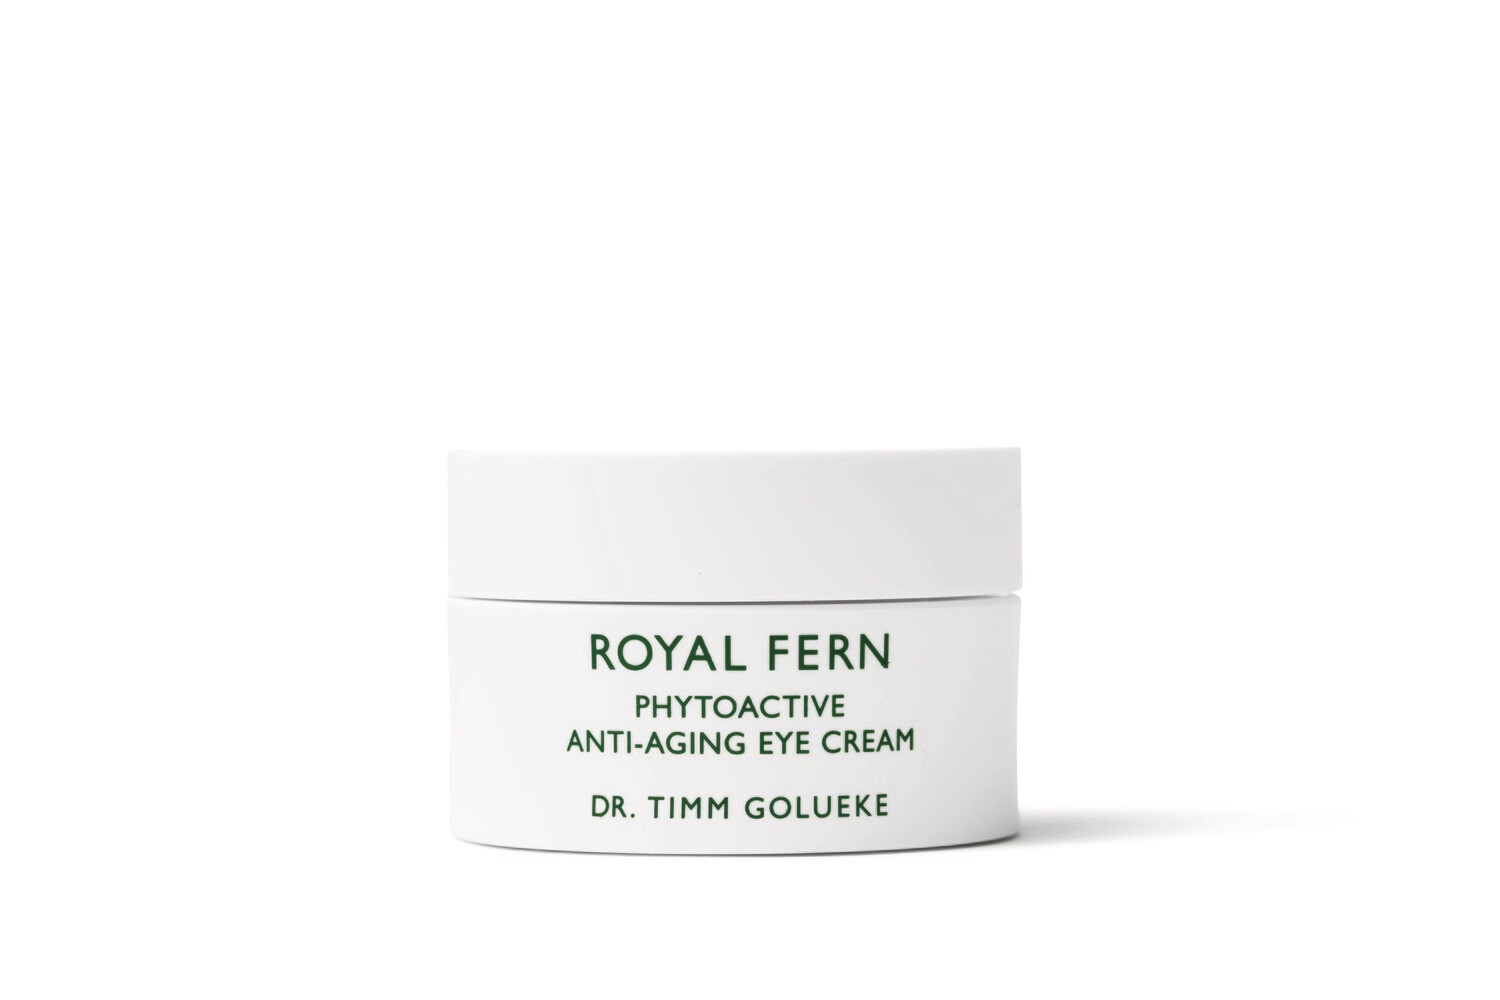 ROYAL FERN - Phytoactive Anti-Aging Eye Cream